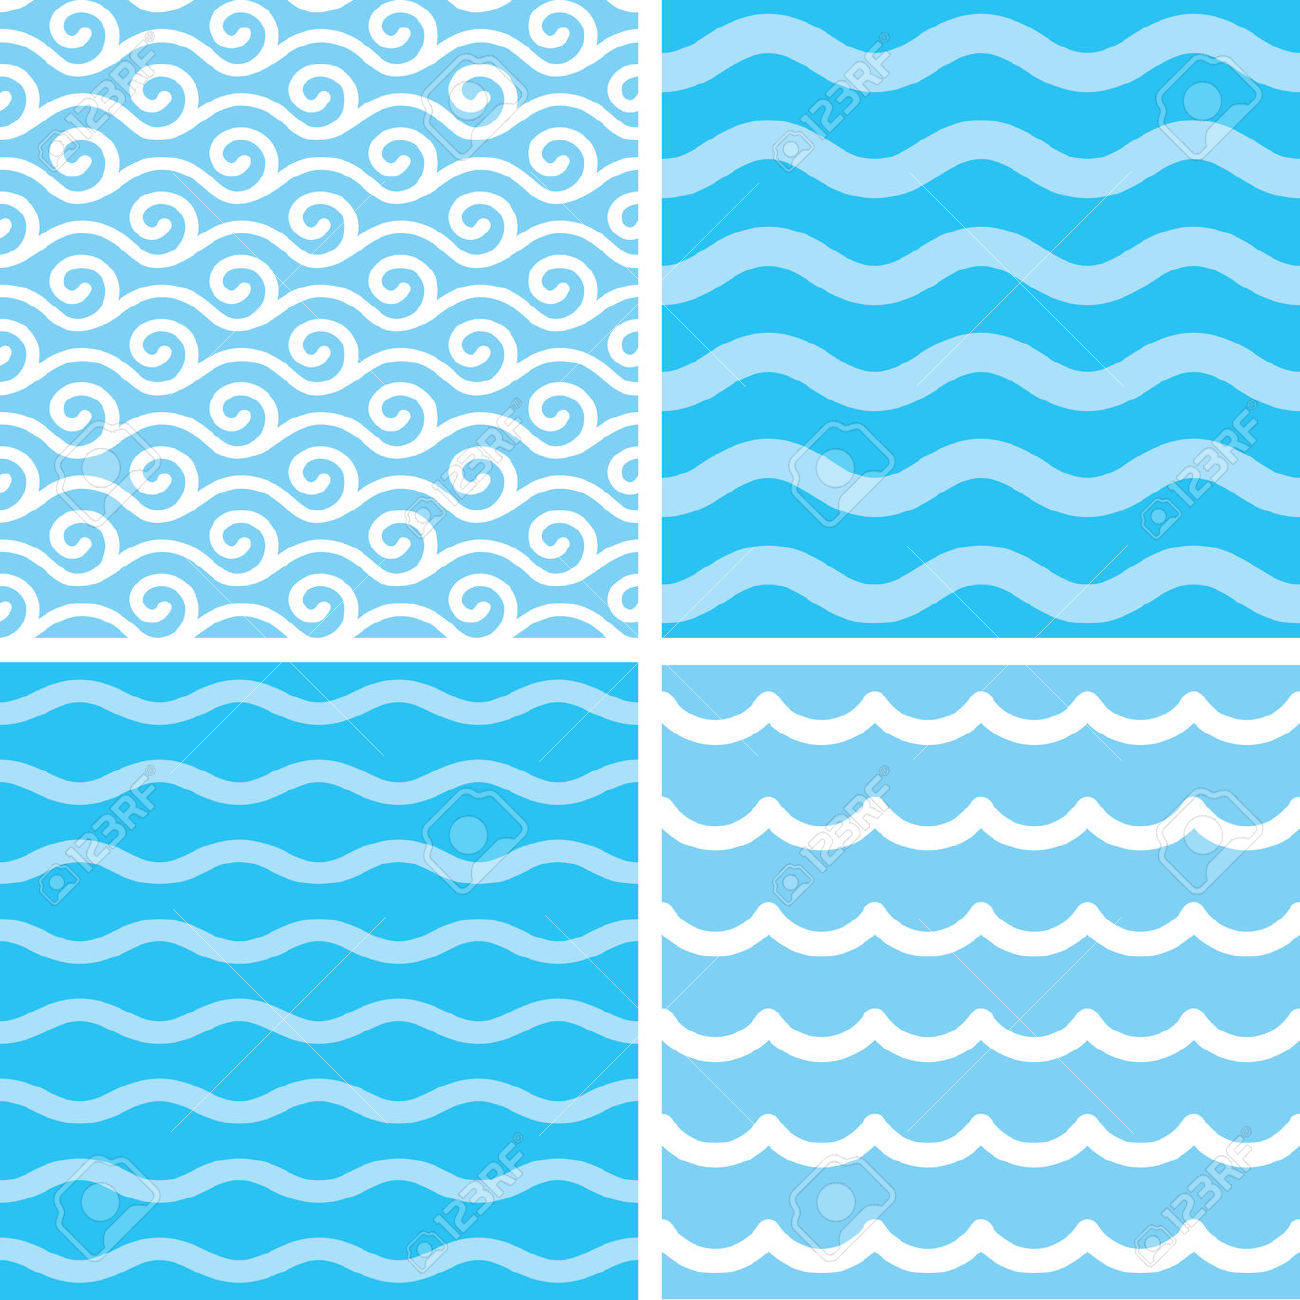 Pool Water Clipart.